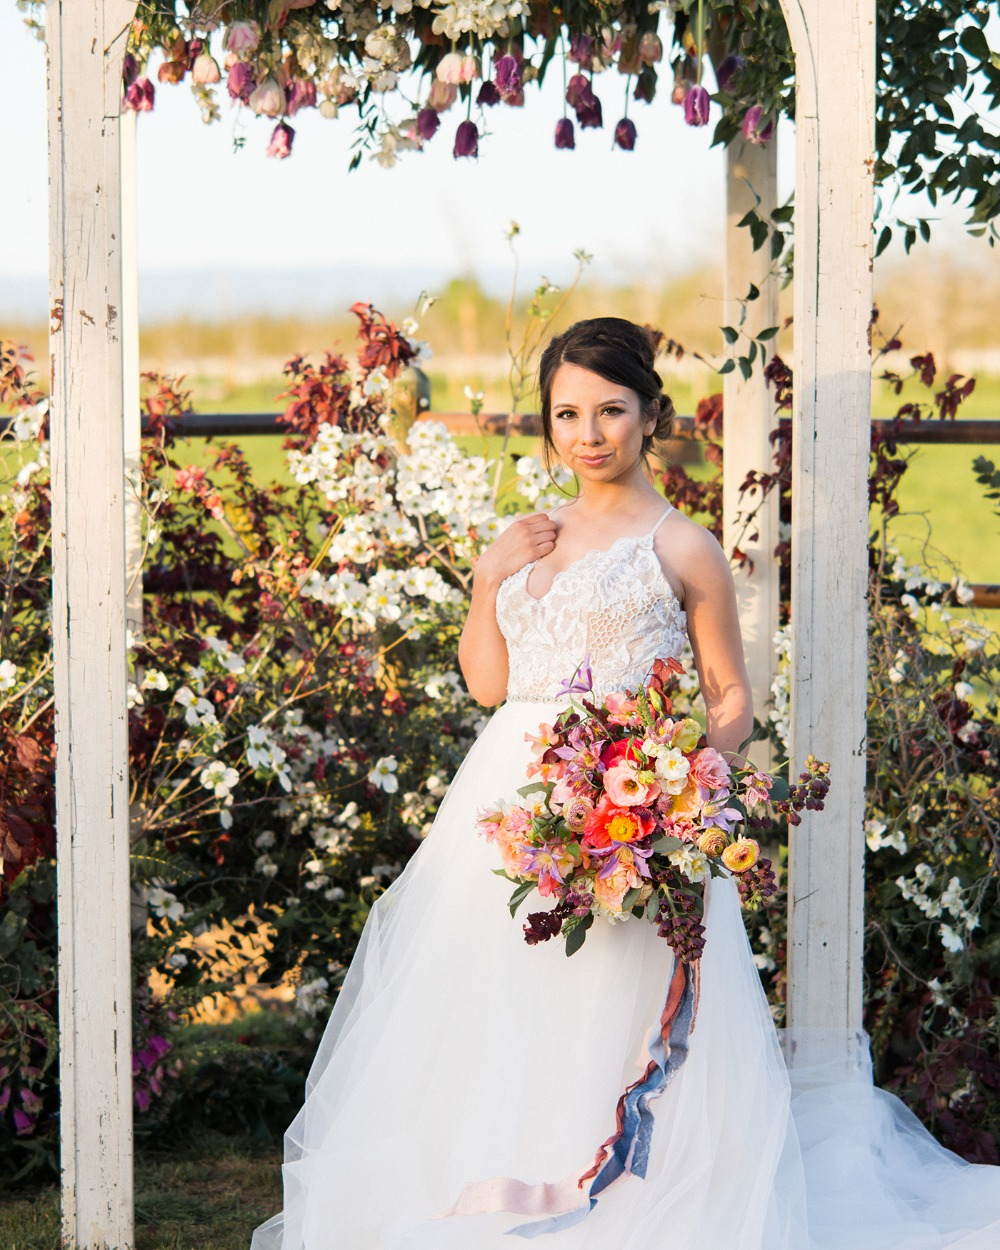 romantic wedding backdrop flower arch